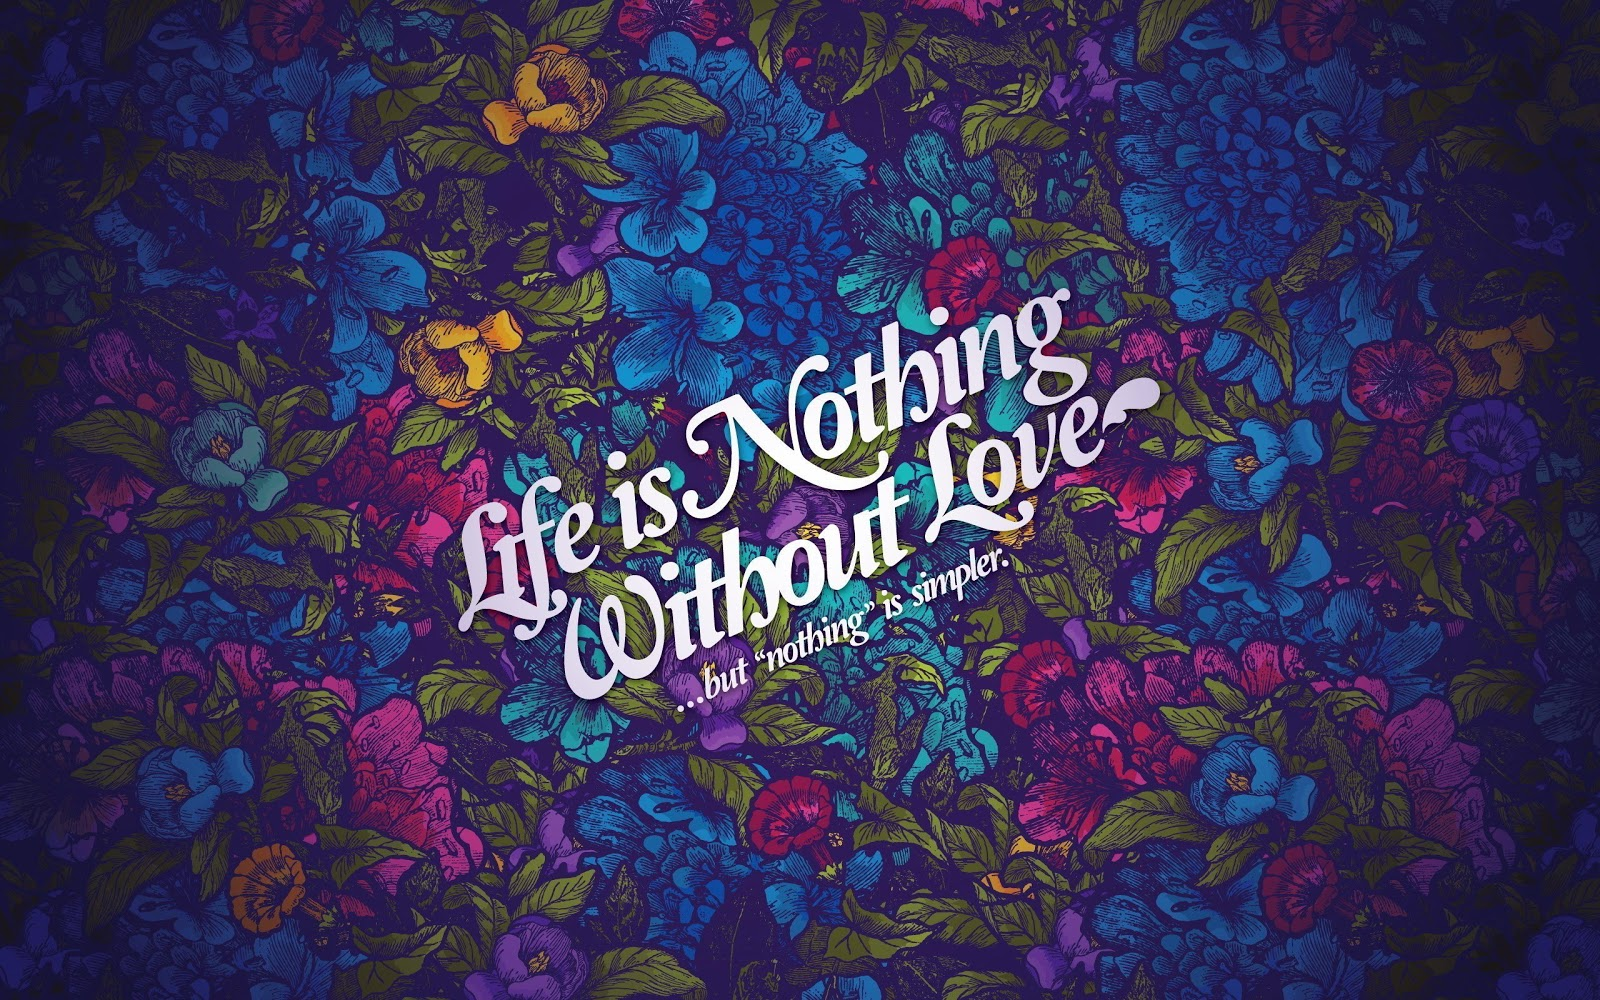 HD Wallpaper Download: Love HD Wallpapers - Life Nothing Without Love